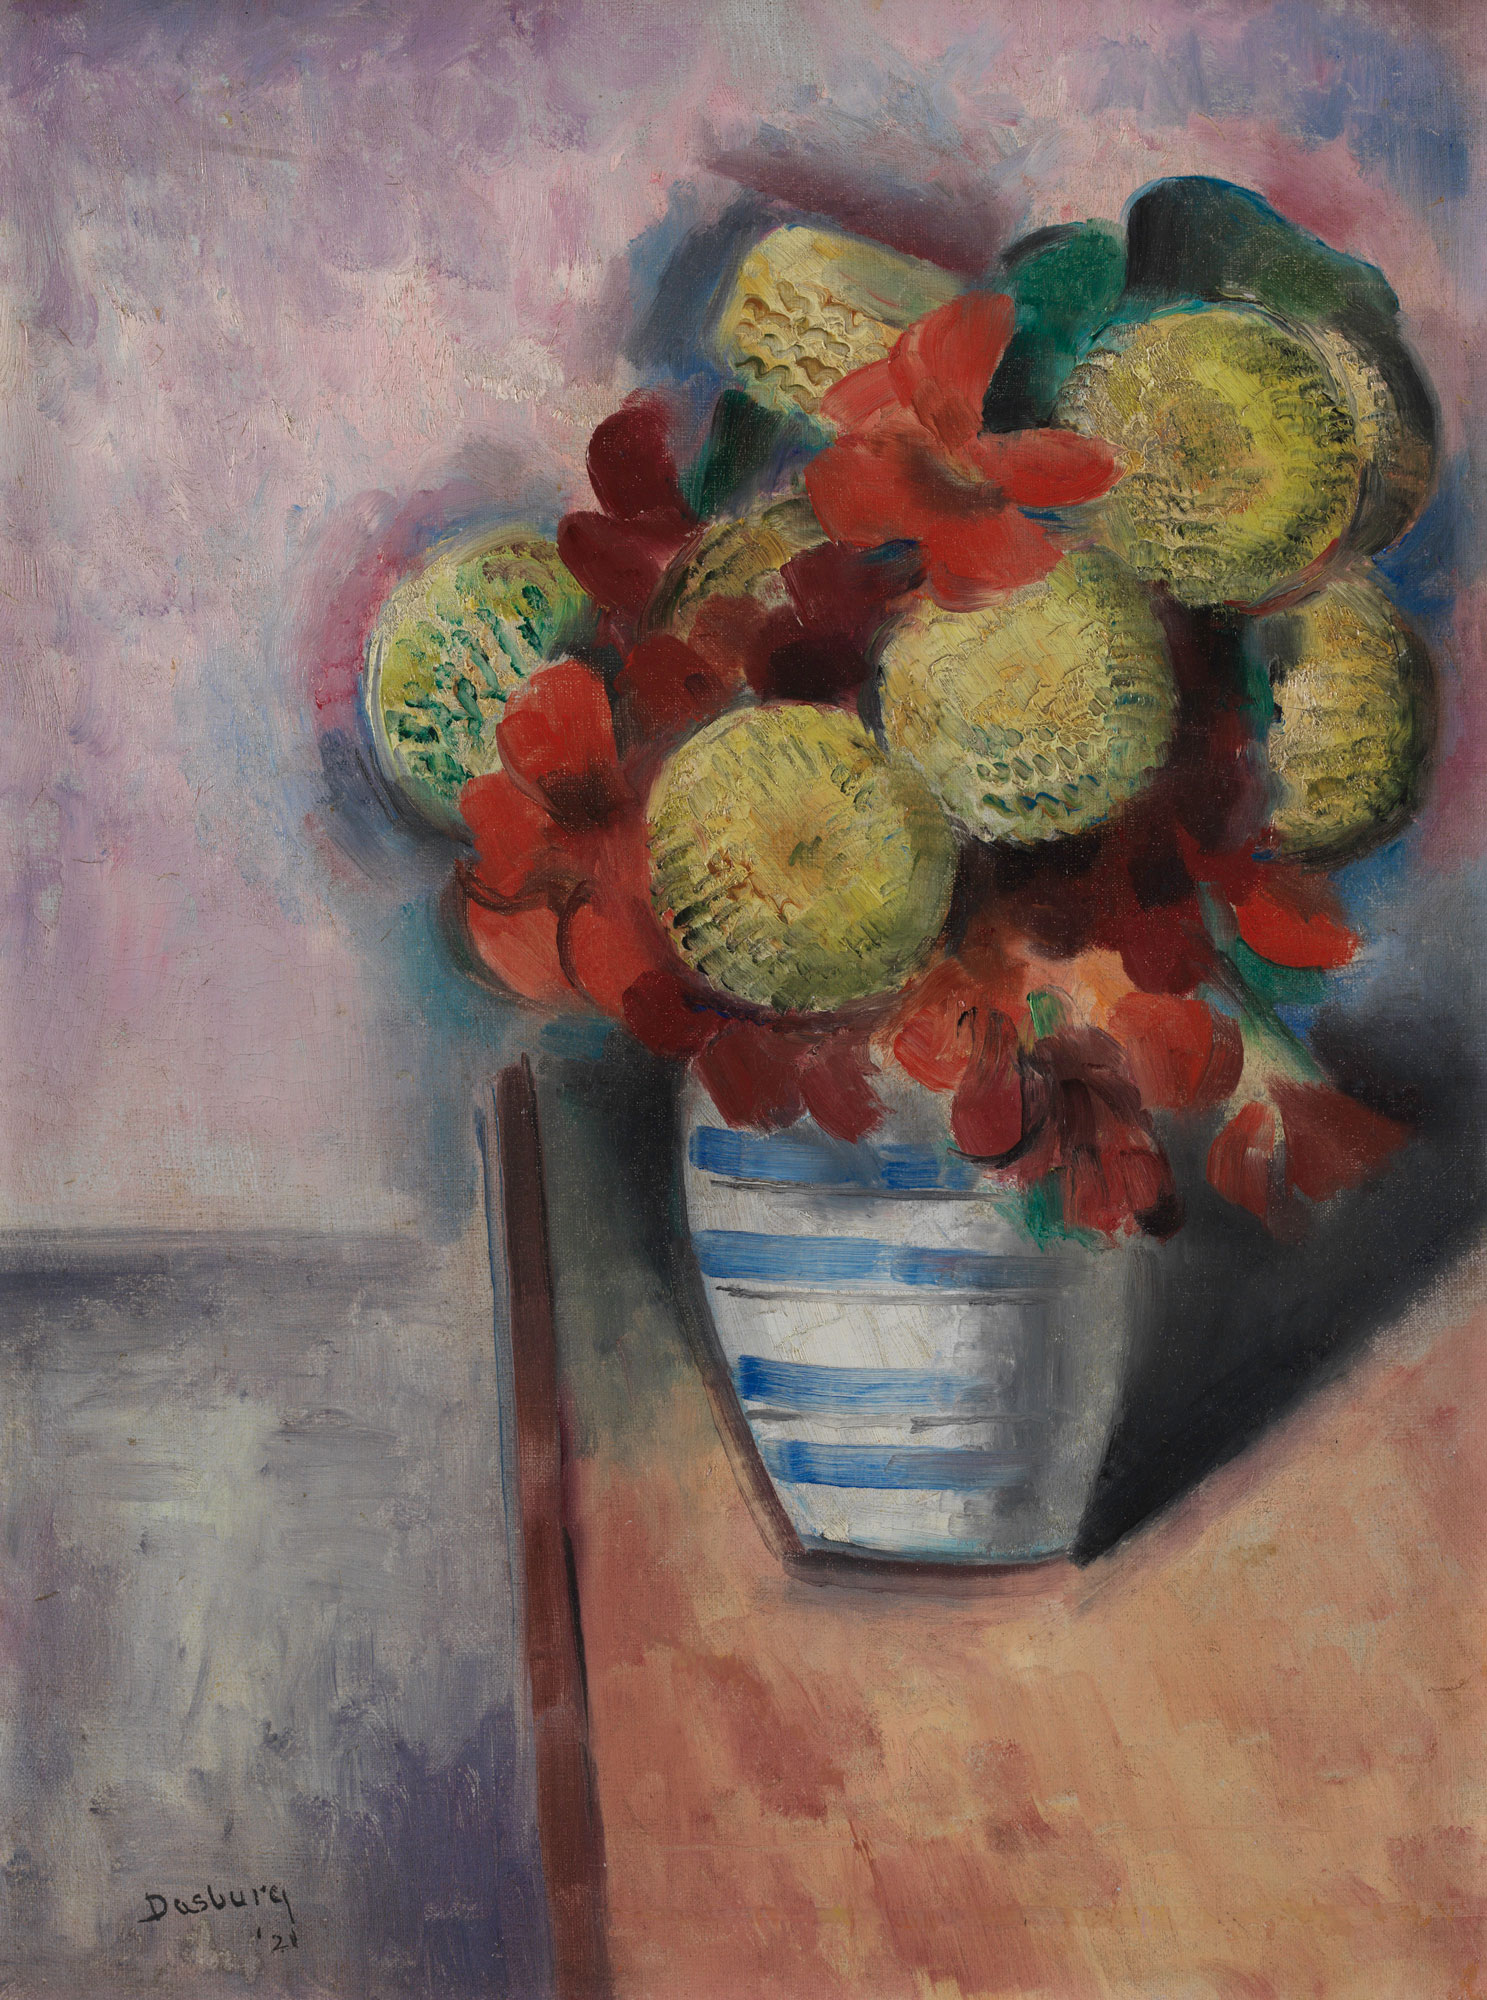 Floral still life painting featuring flowers and vase on a table.